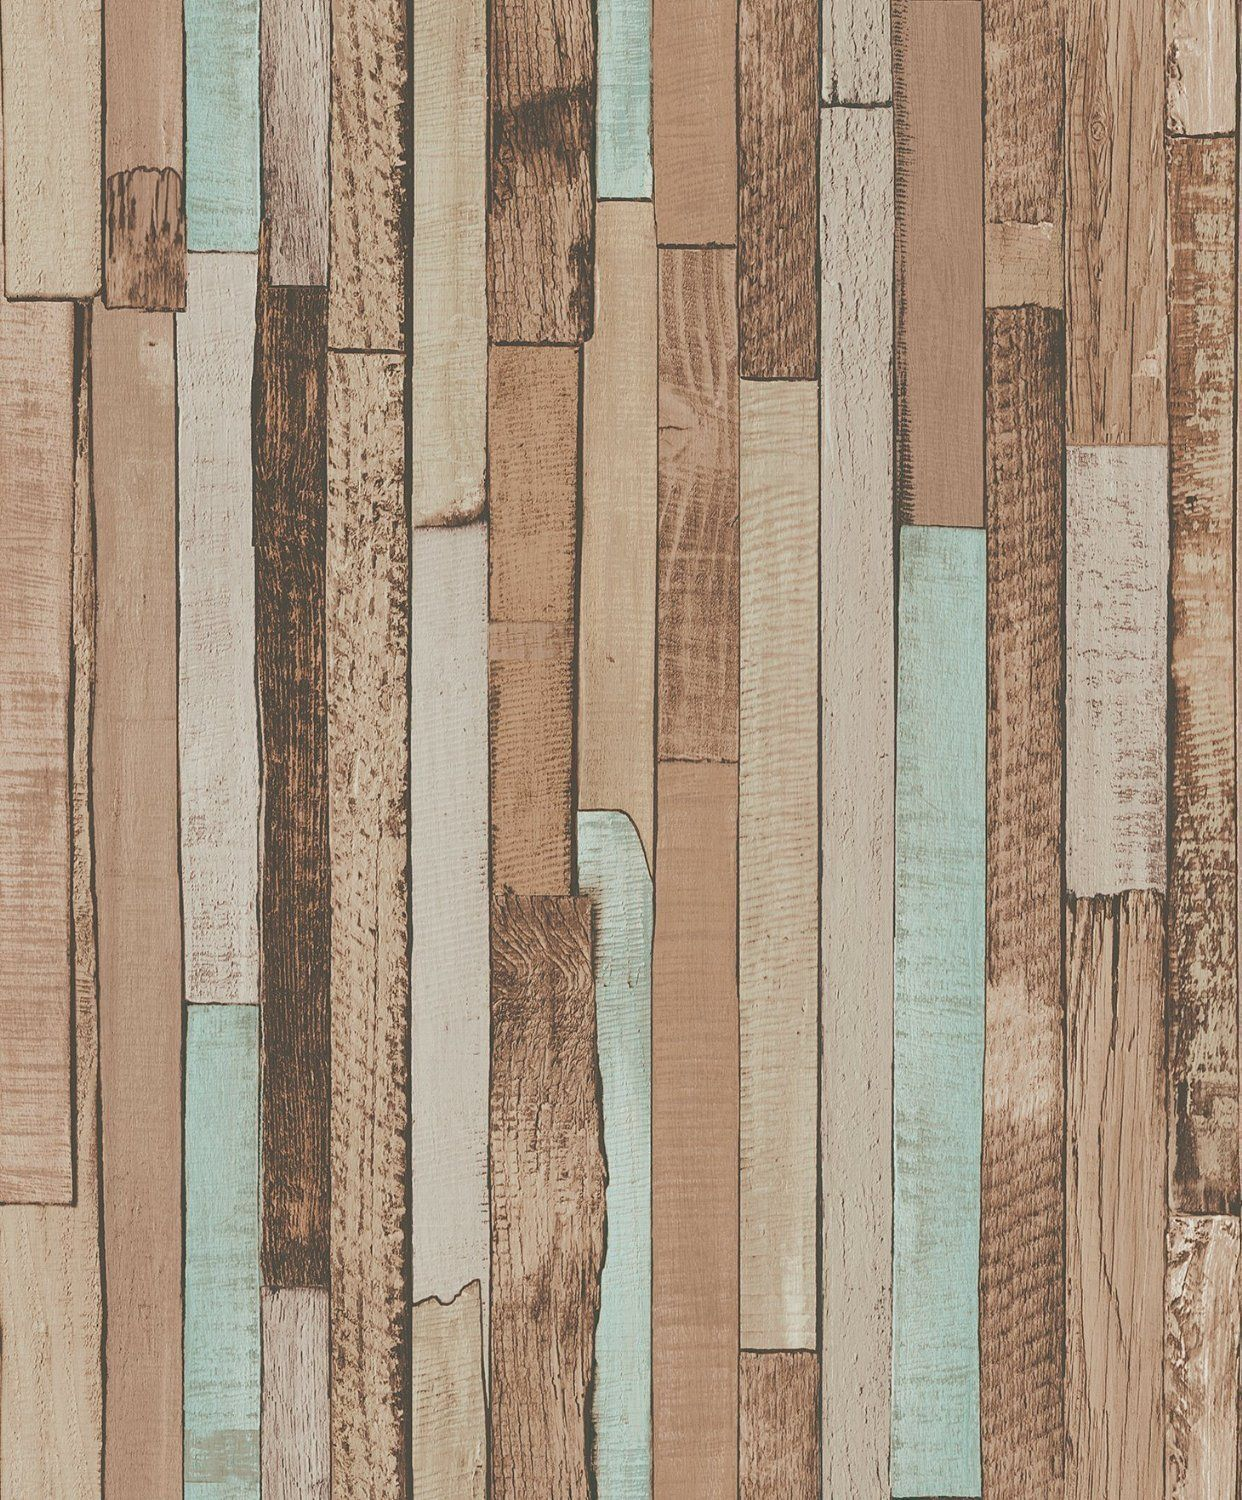 Blooming Wall - Papel pintado de madera de color vintage, 20.8 In32.8 Ft = 57 Sq